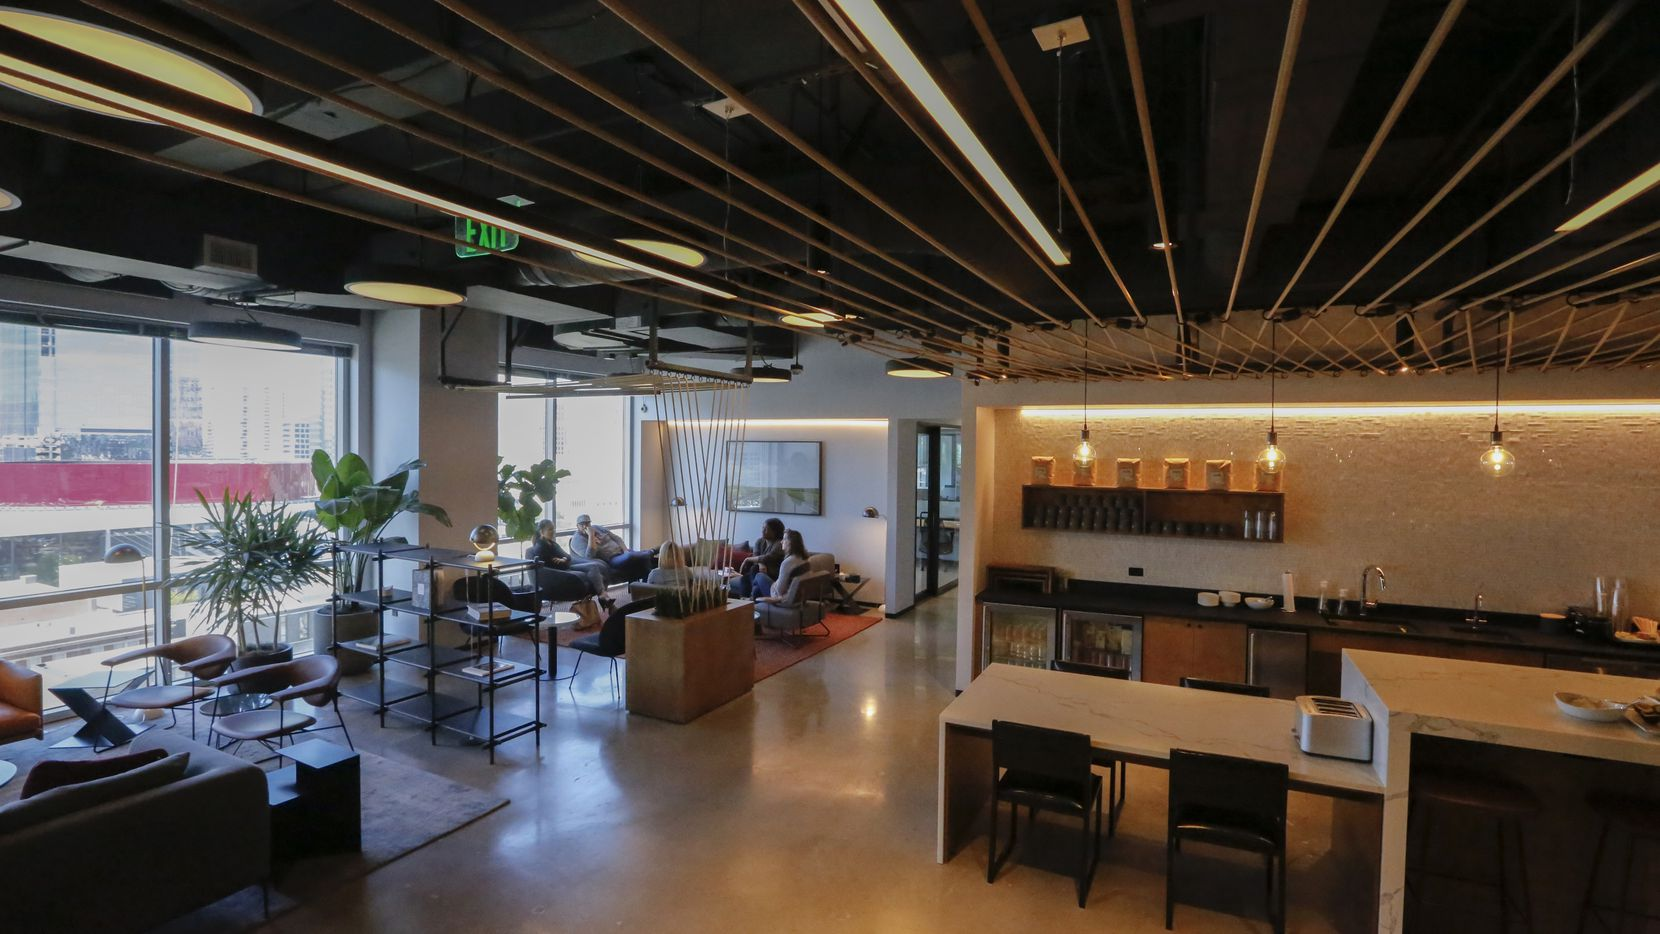 New York-based coworking firm Industrious — which operates this shared office center in downtown Dallas' Arts District — recently signed a deal to locate in multiple shopping malls.